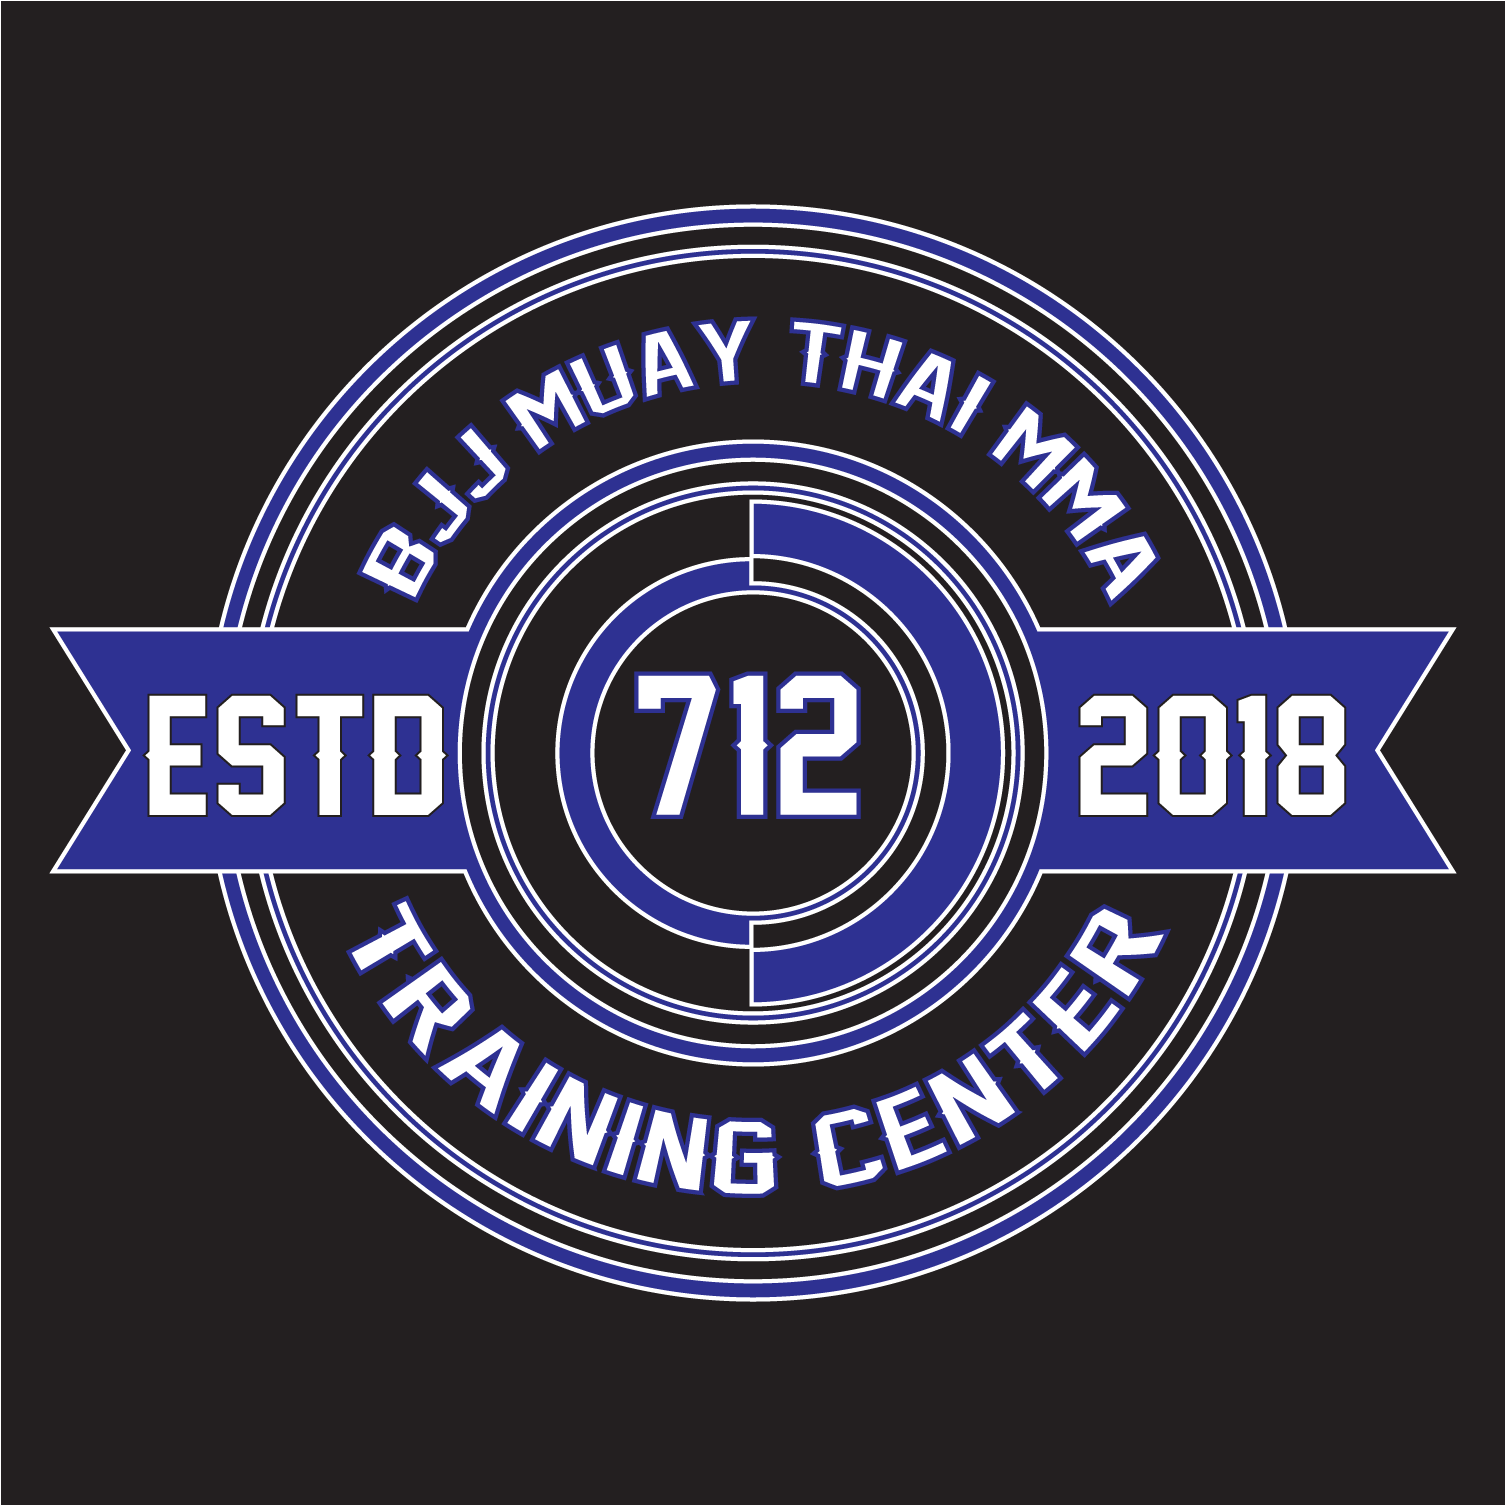 712TrainingCenter